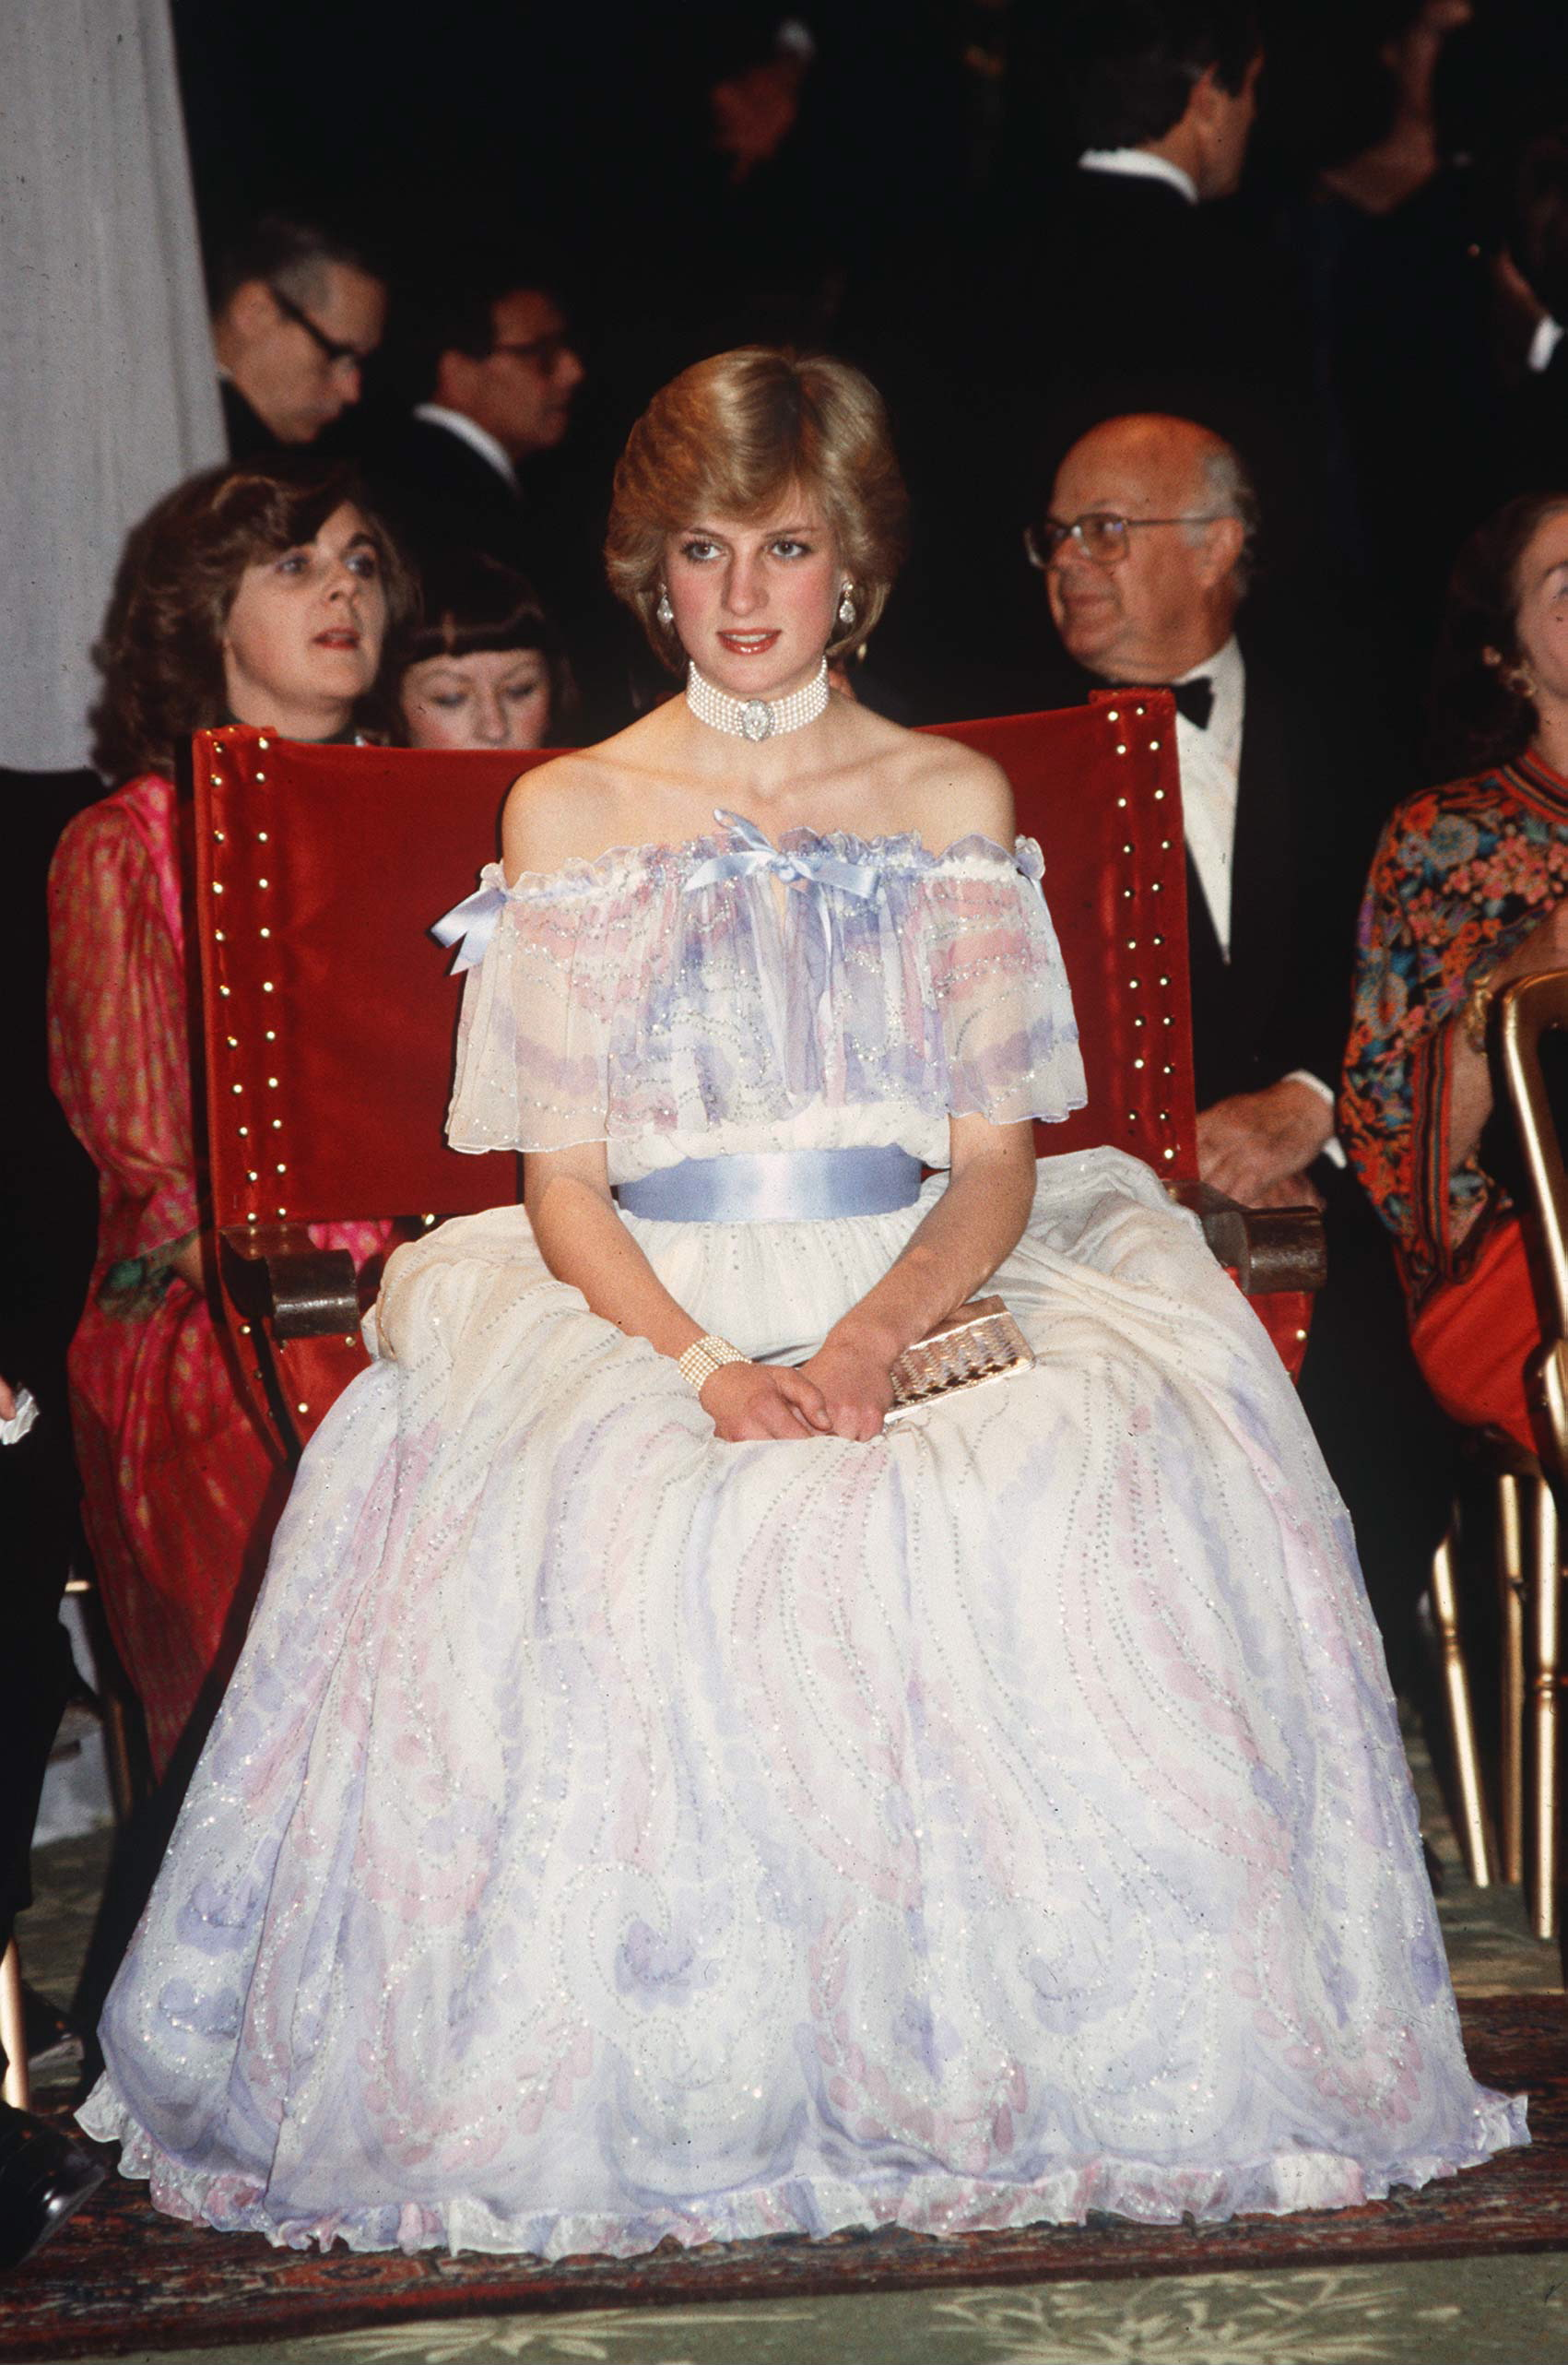 At an exhibit opening at the Victoria And Albert Museum, Diana wore a Bellville Sassoon gown; she famously fell asleep while sitting up at this event, adding to public speculation that the princess was expecting. It was later revealed that she was pregnant with Prince William at the time.